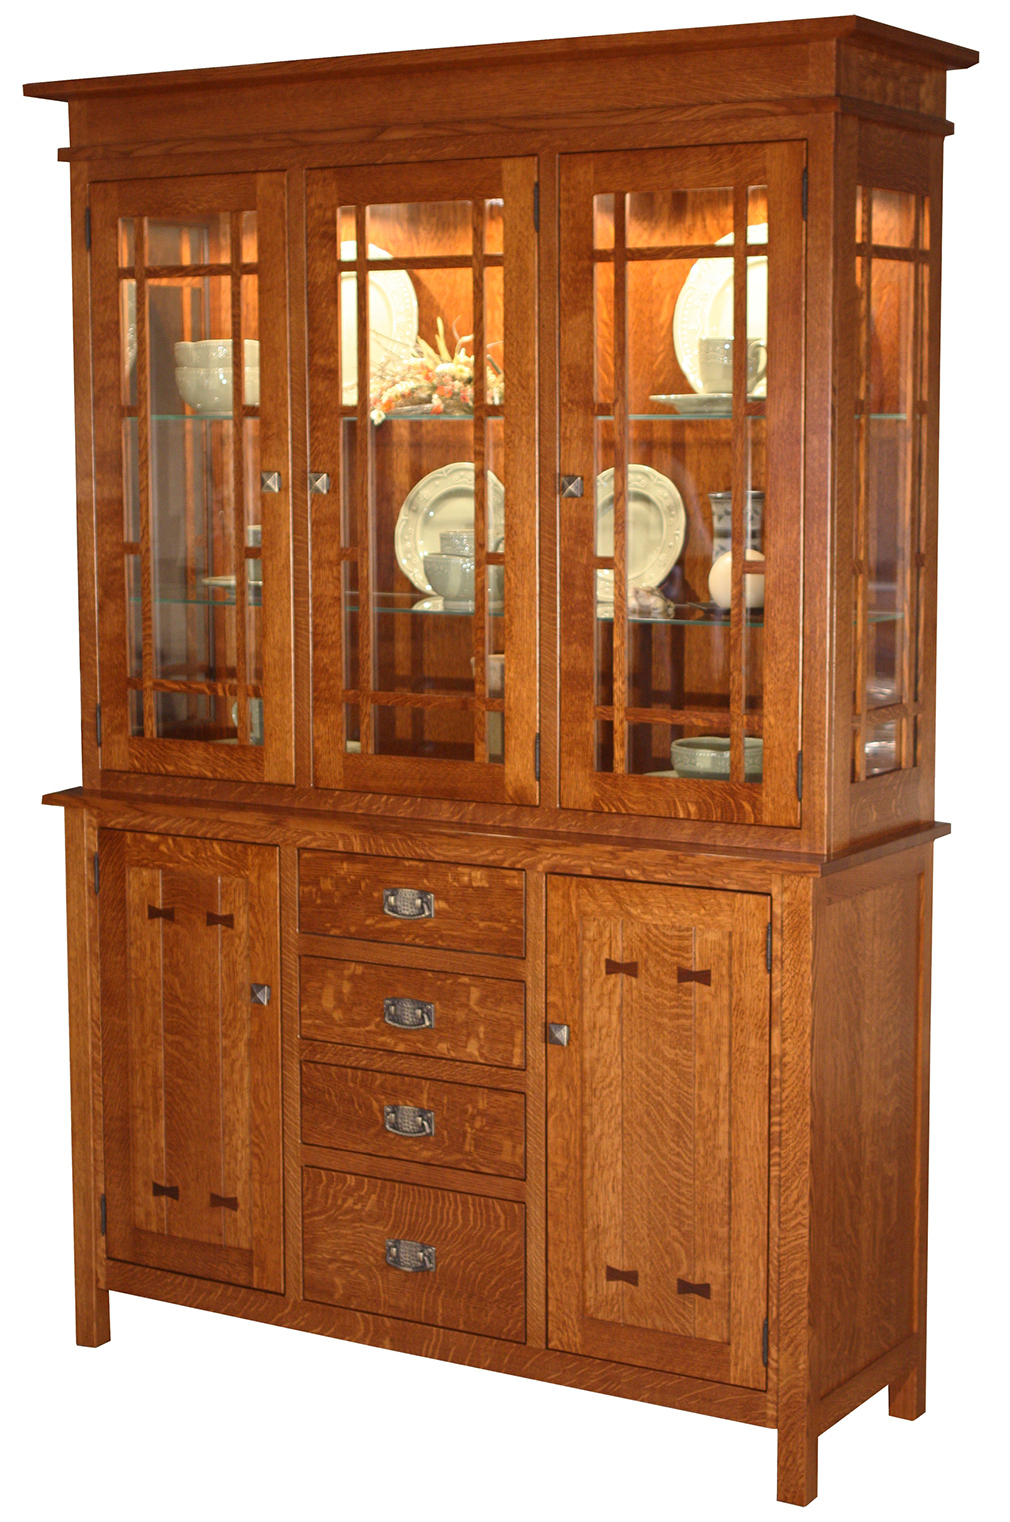 Stylish mission style furniture in stock; the gettysburg three door hutch and buffet wdlvpoe